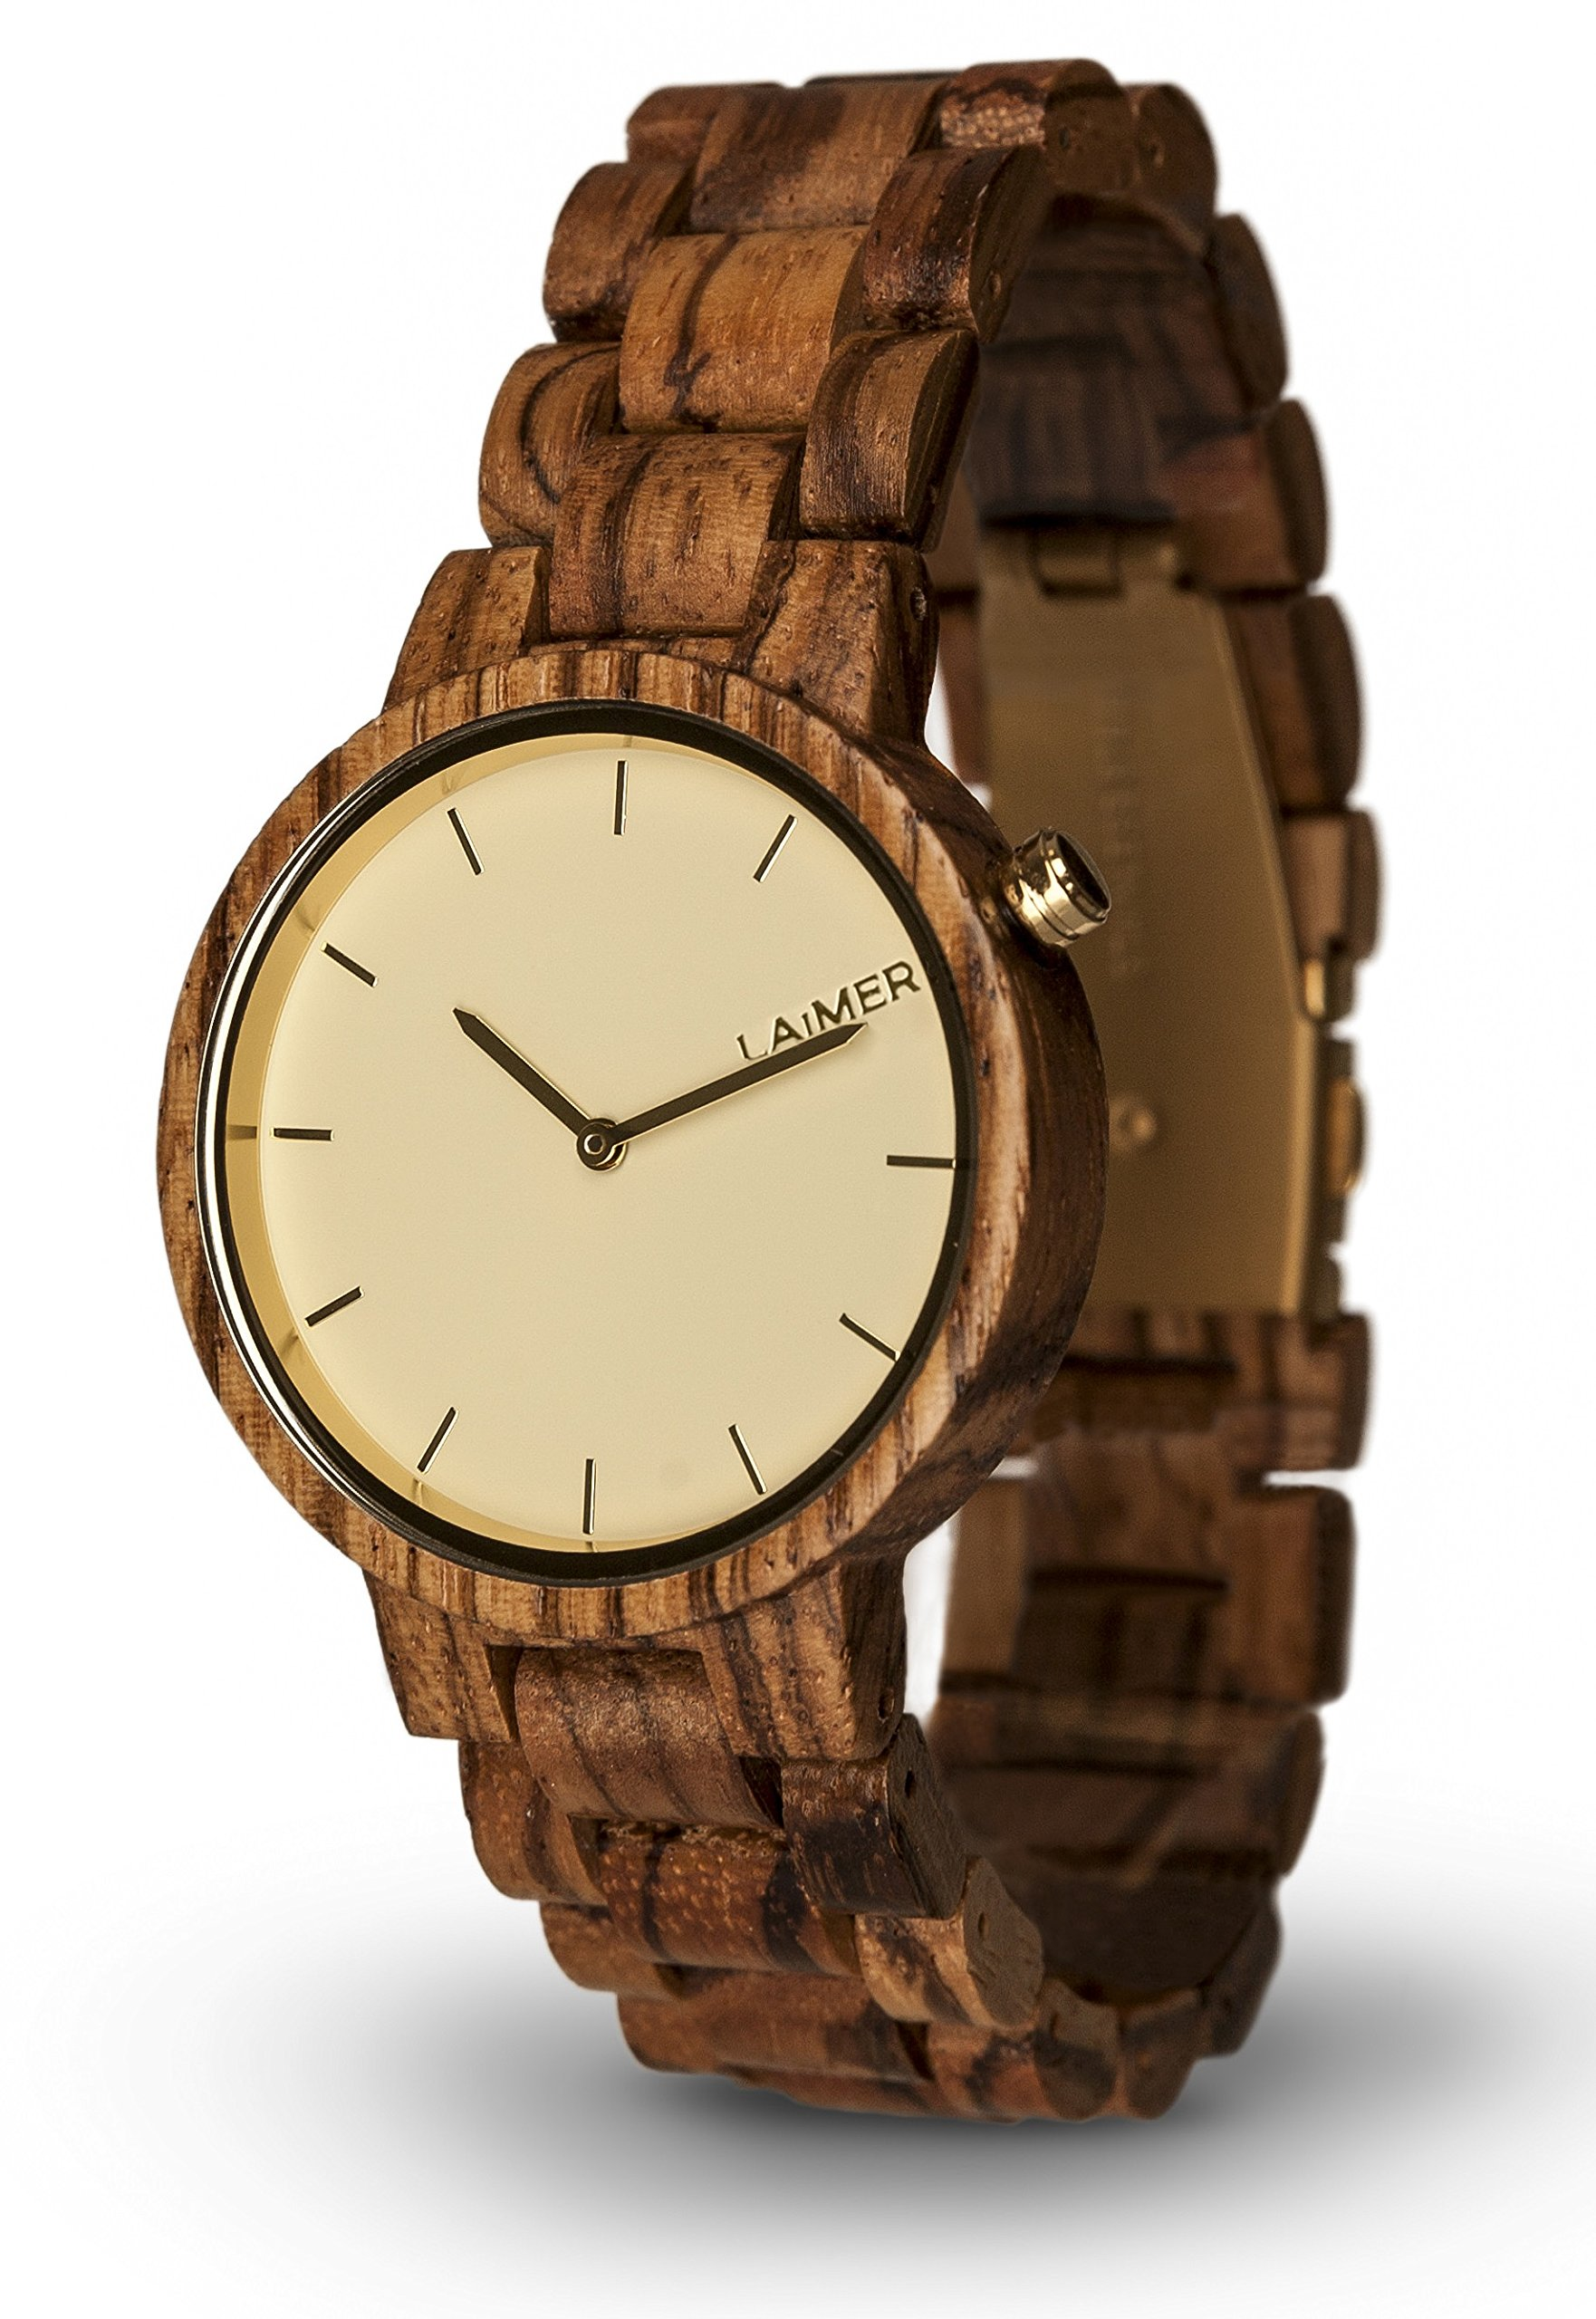 LAiMER Women's Wooden Watch MELANIE - Wrist Watch made of natural Zebrano Wood - Simple Elegance, Nature & Lifestyle